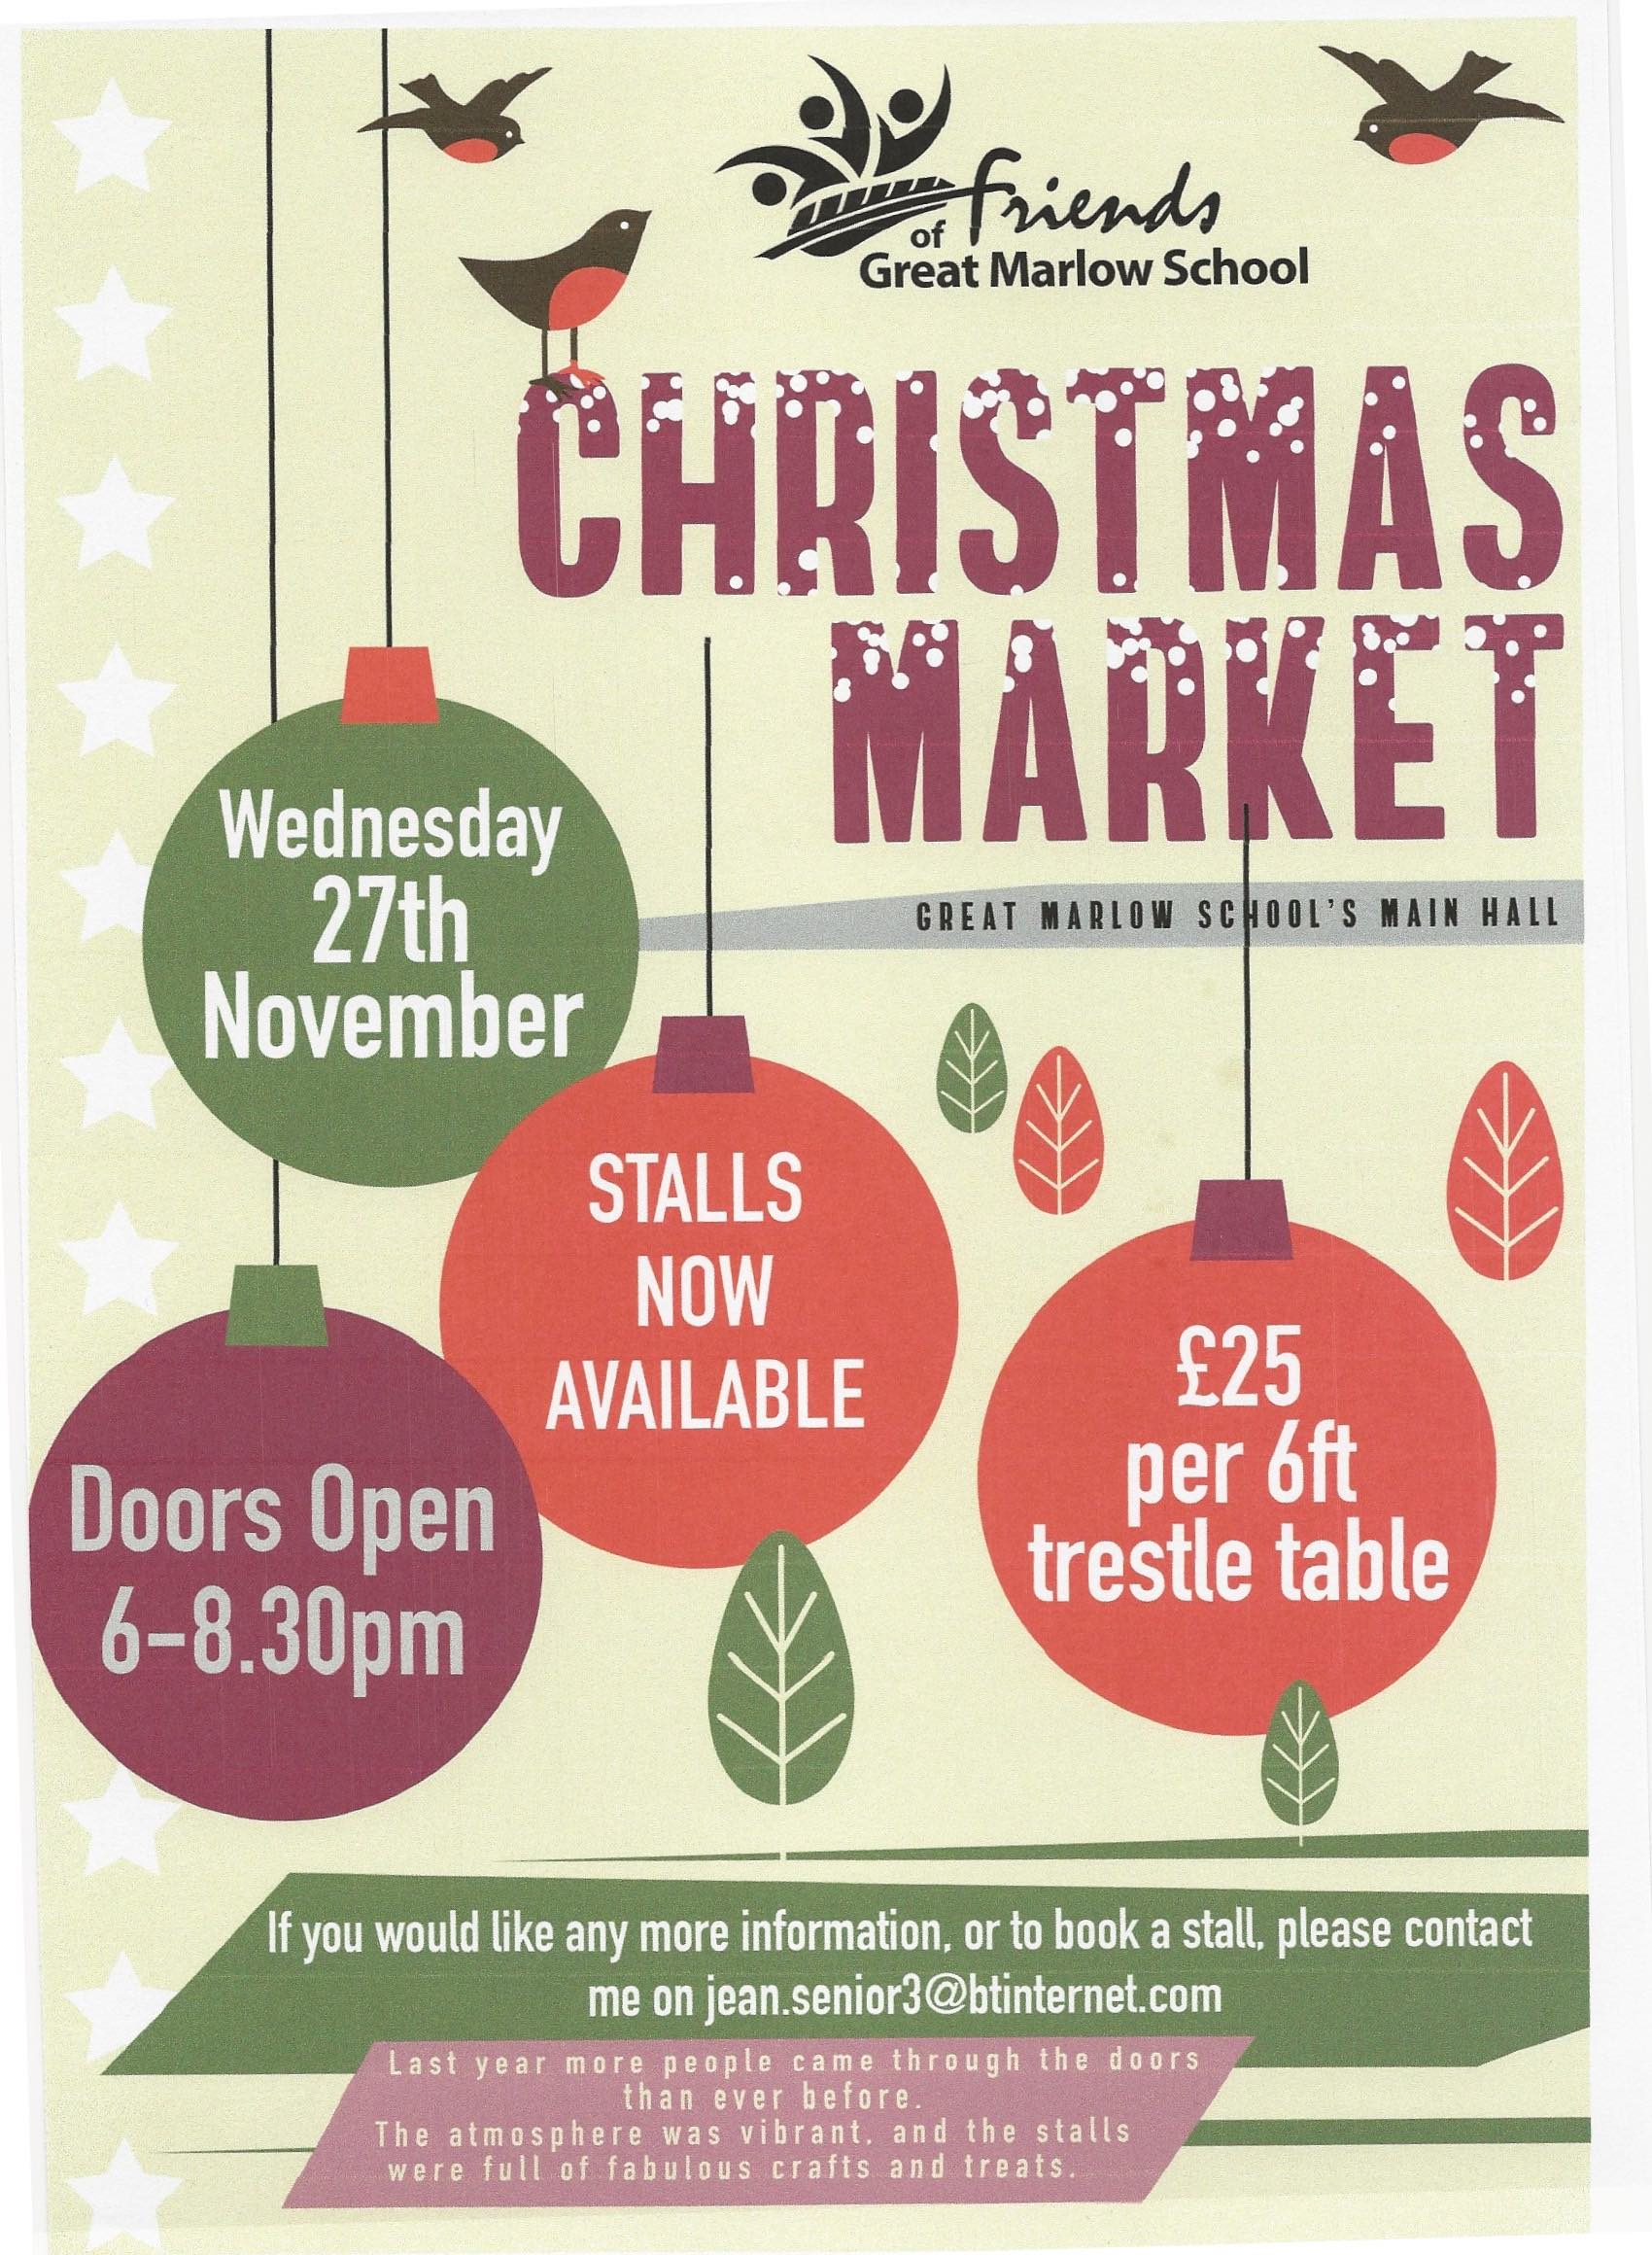 Great Marlow School Christmas Market